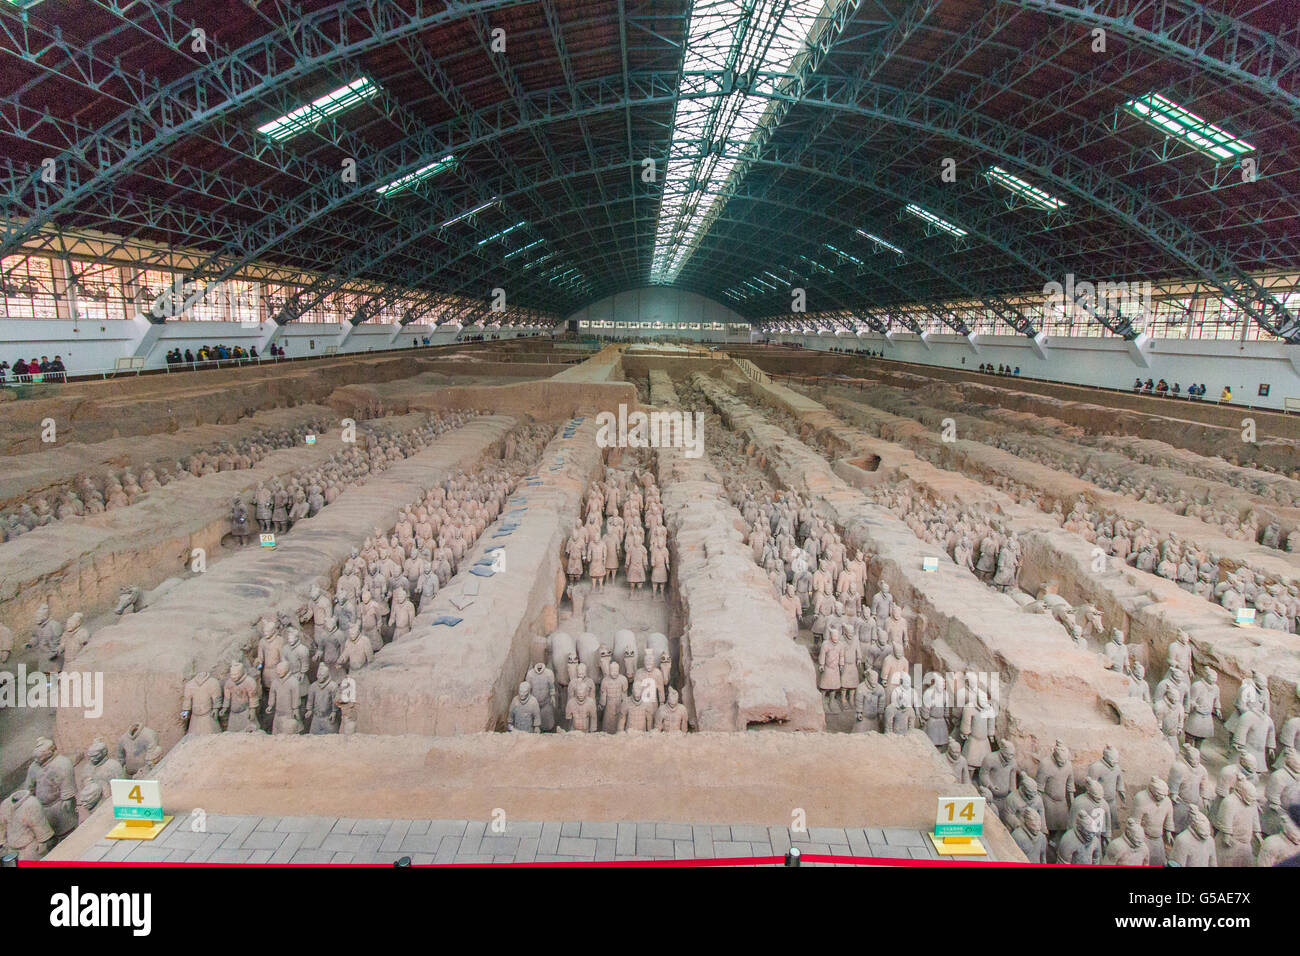 General View panorama of The Terracotta Army of Emperor Qin Shi Huang, Lintong District, Xi'an, Shaanxi province - Stock Image